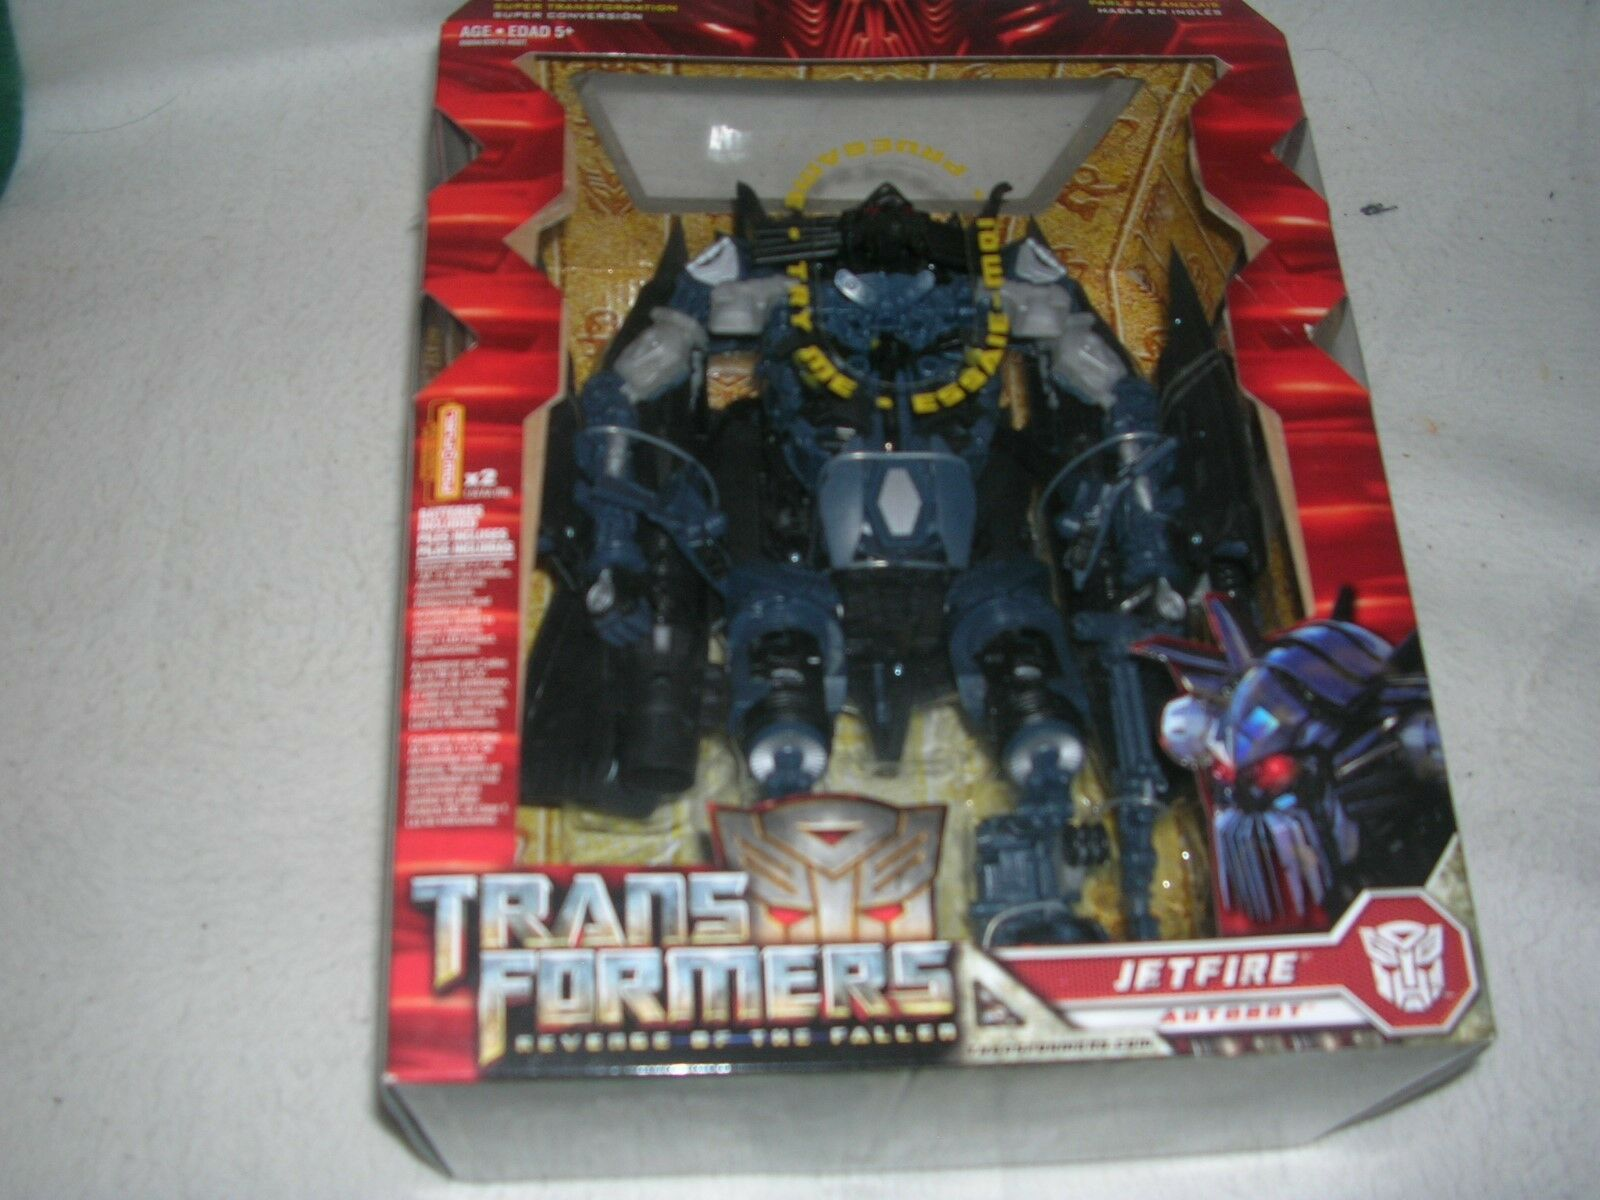 Transformers revenge of the fallen jetfire leader - klasse neue spricht   lichter